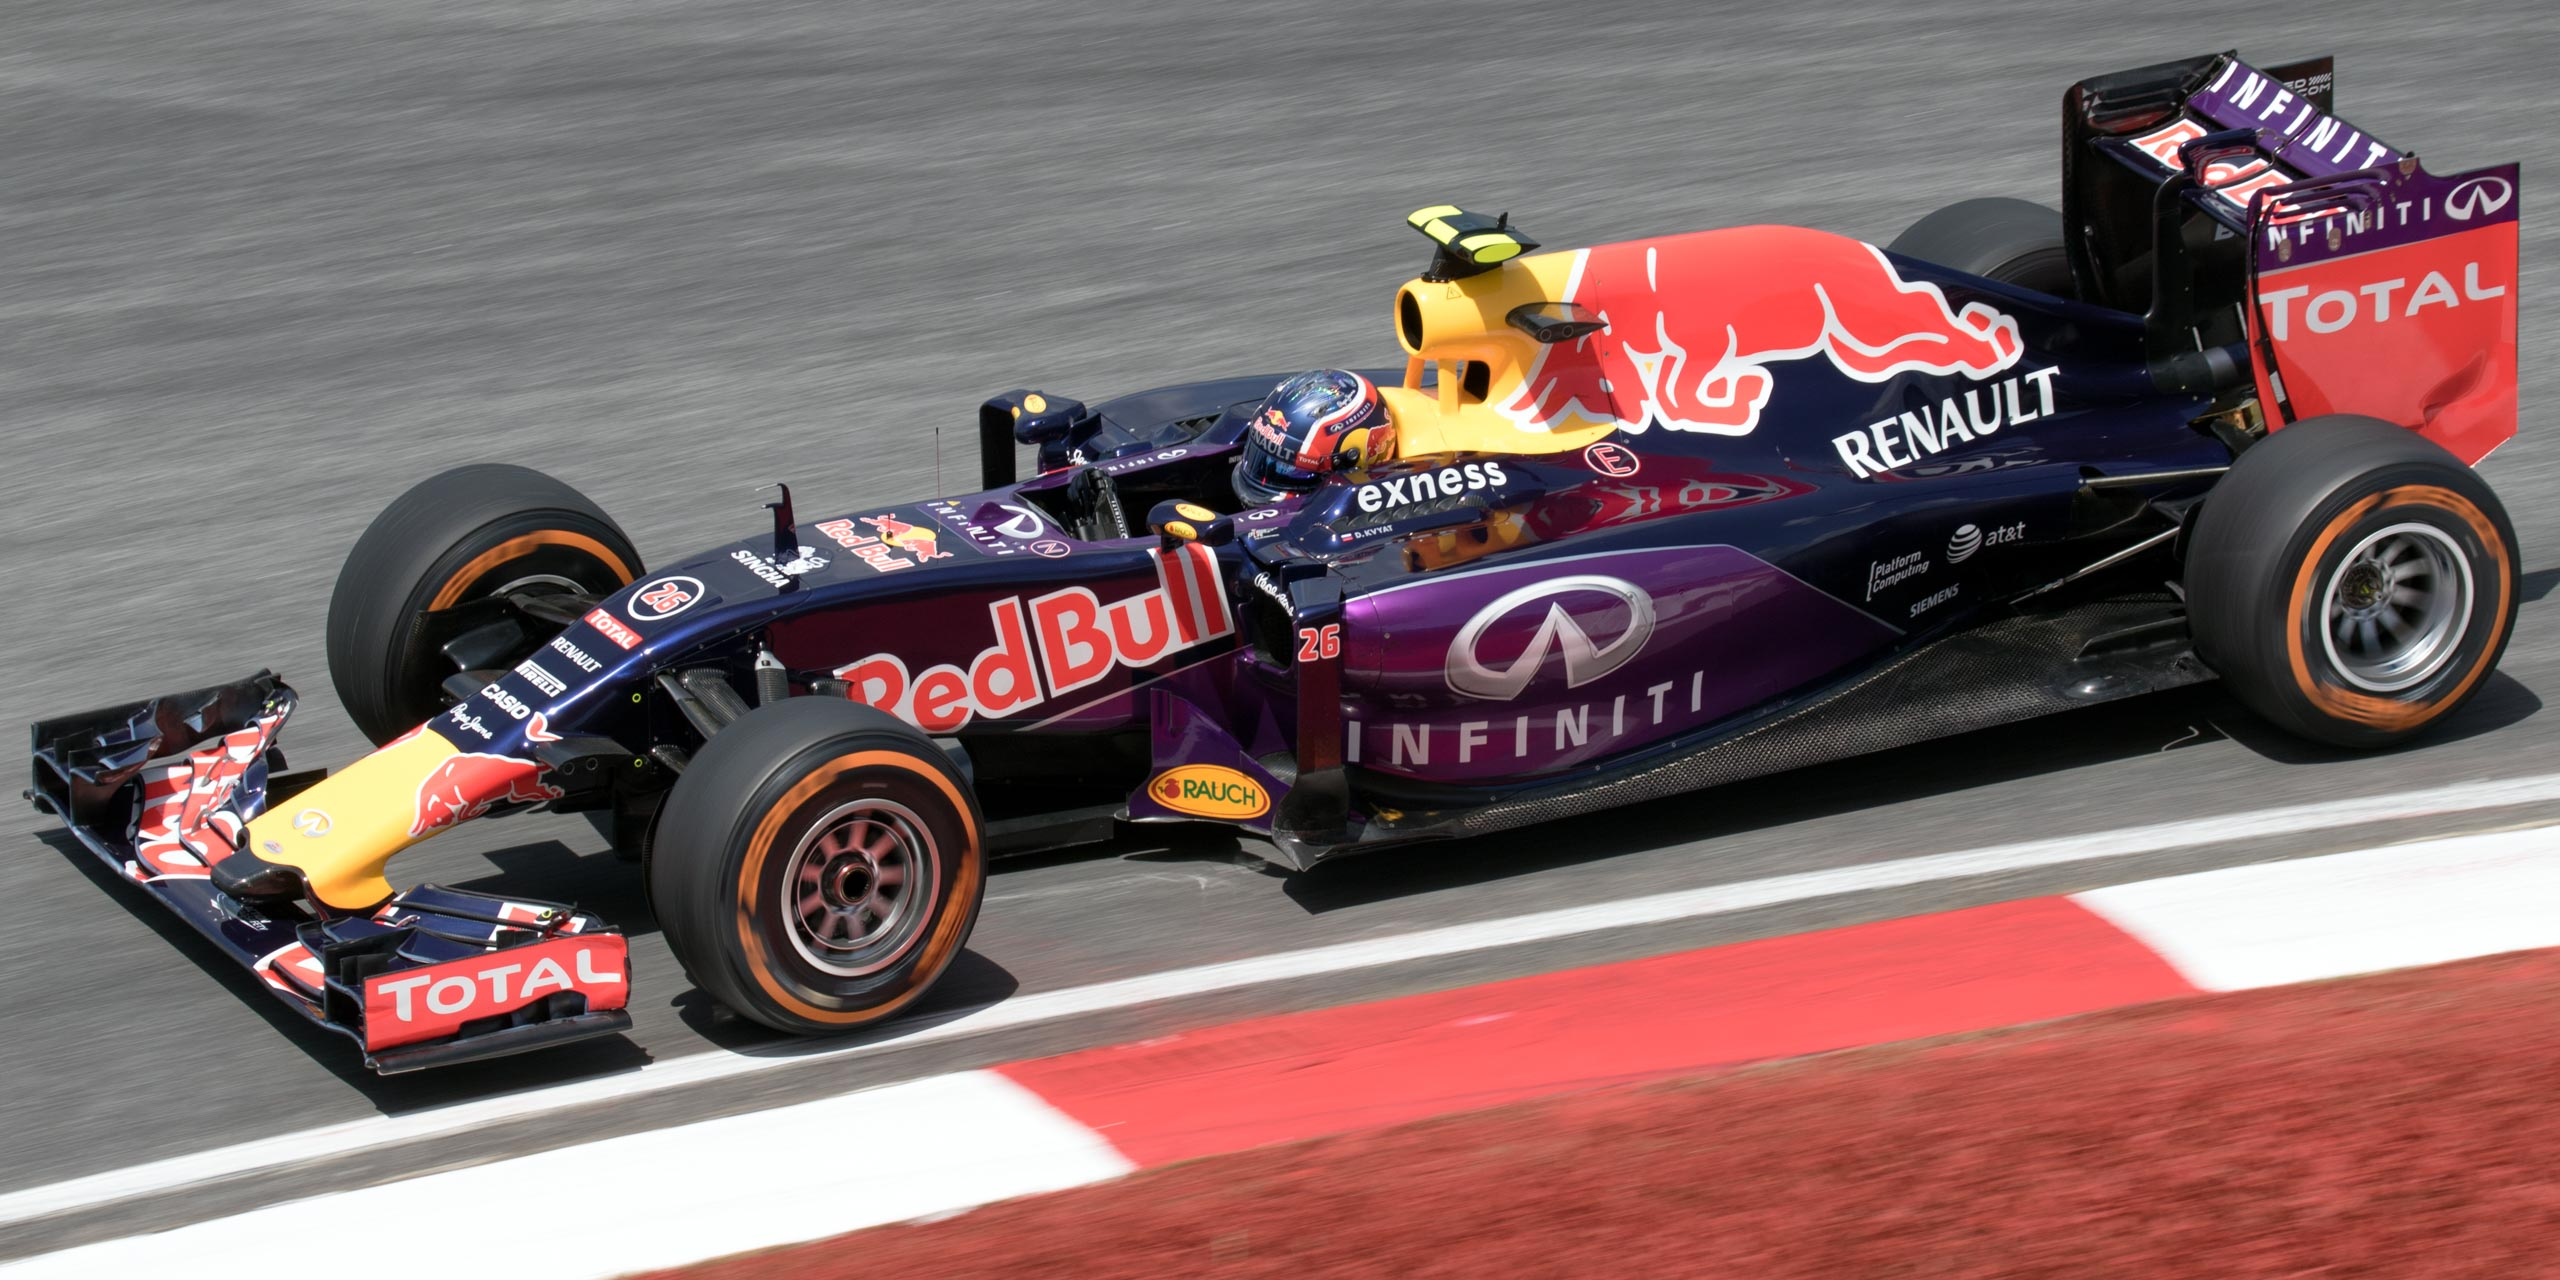 2015 f1 rb11 autoblog - photo #10